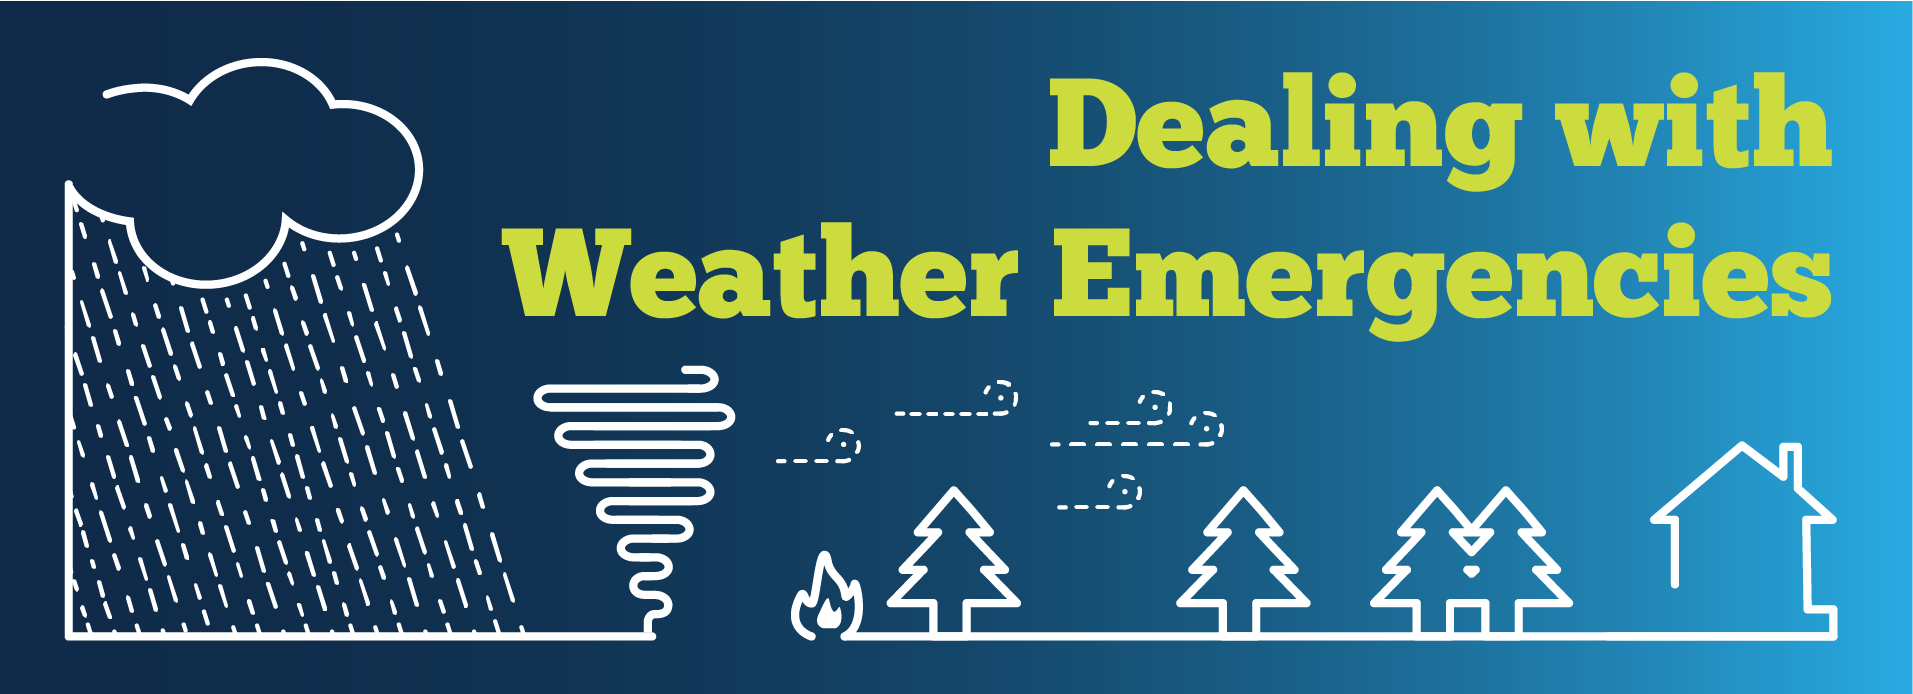 Weather Emergency Banner